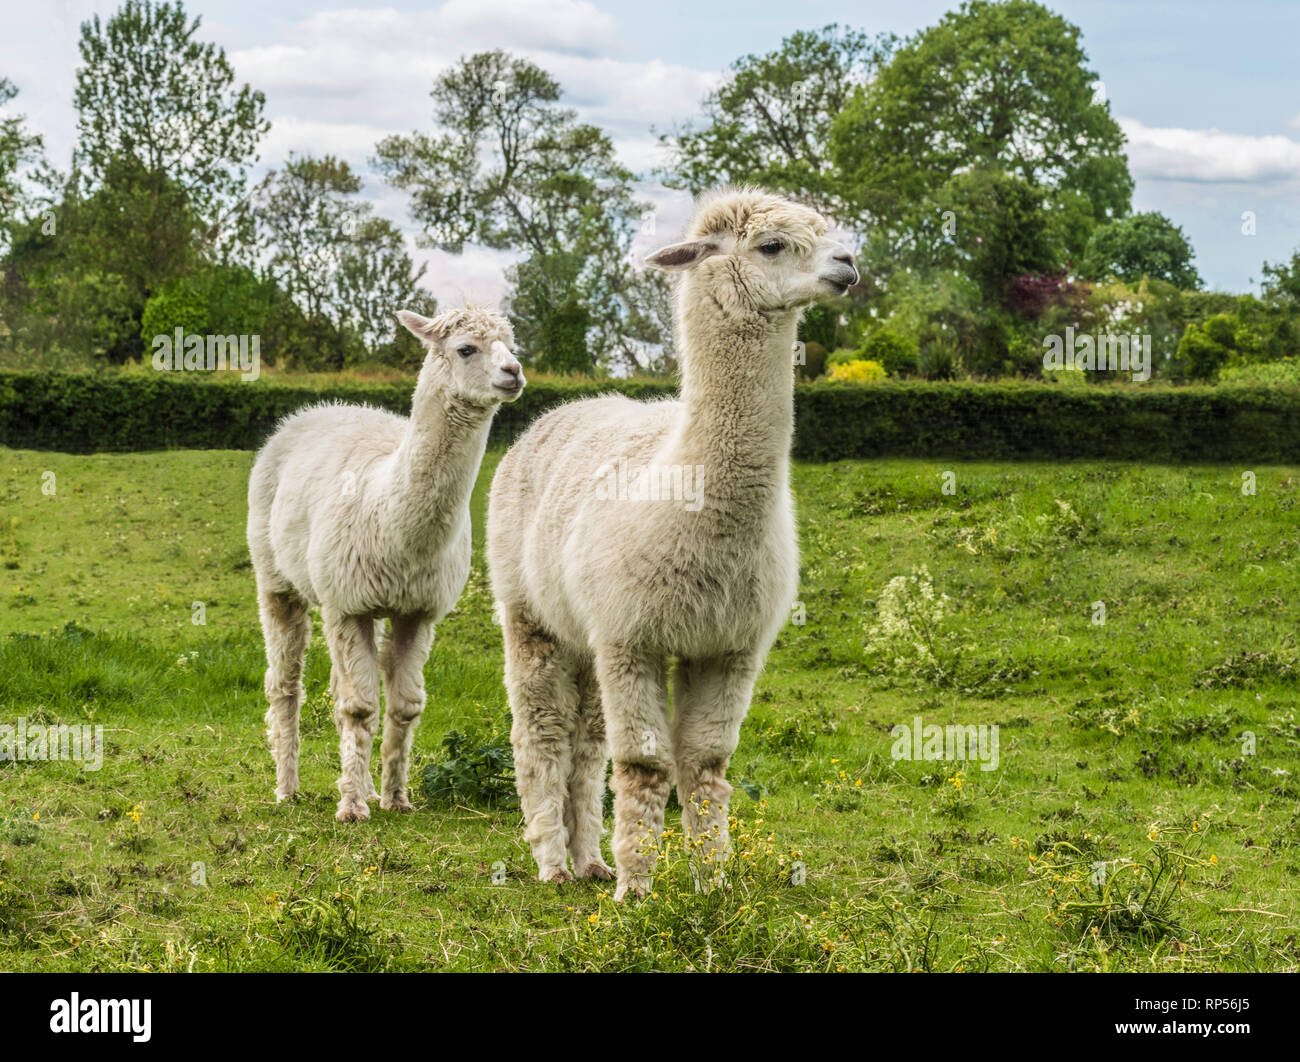 Alpaca (Vicugna pacos) - a species of South American camelid. - Stock Image